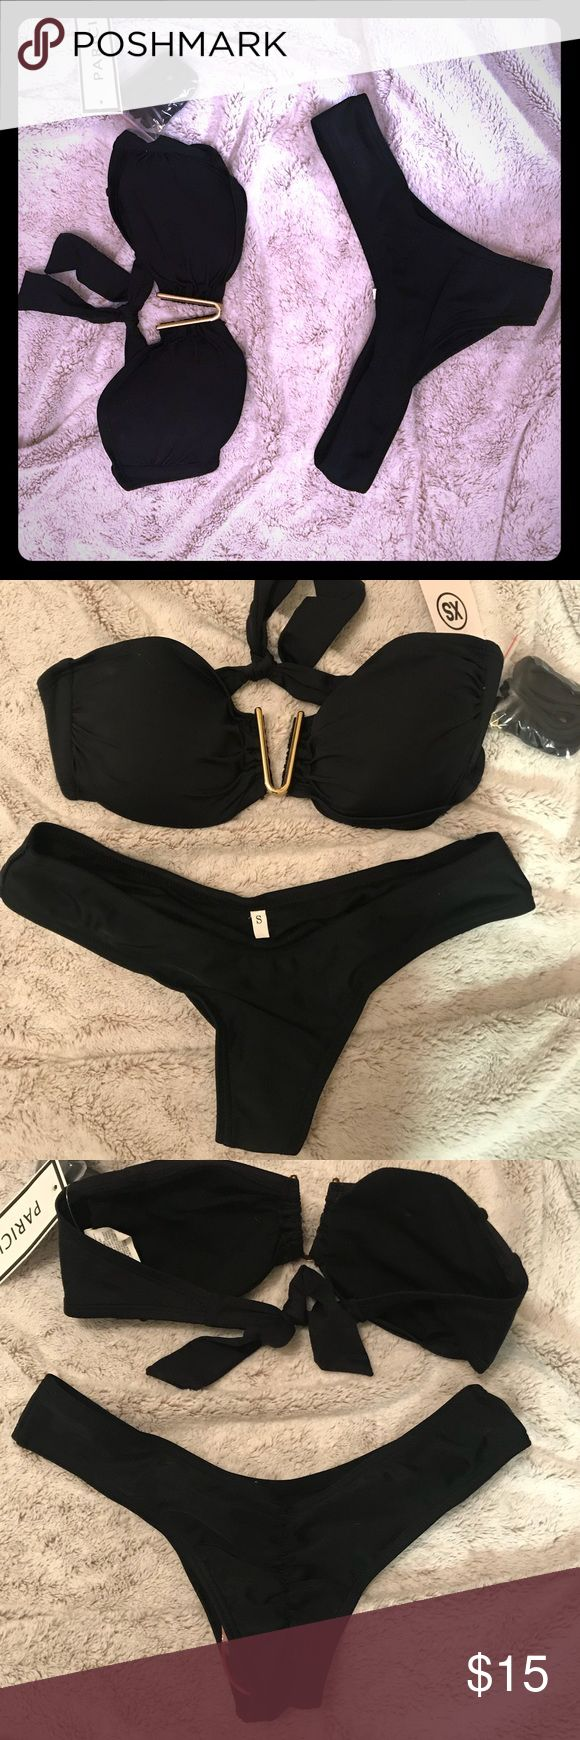 Black/Gold Bikini Set XS Black & Gold Bikini Top - can wear strapless or as a halter. Removable bra pads, gorgeous gold clasp in front and tied back. Small Mid-Brazilian Bikini Bottom with crouched back. The only reason I'm selling this is because I purchased myself the same bikini set a month ago! NWT, price is for both but can sell separately if requested. Parici Swim Bikinis